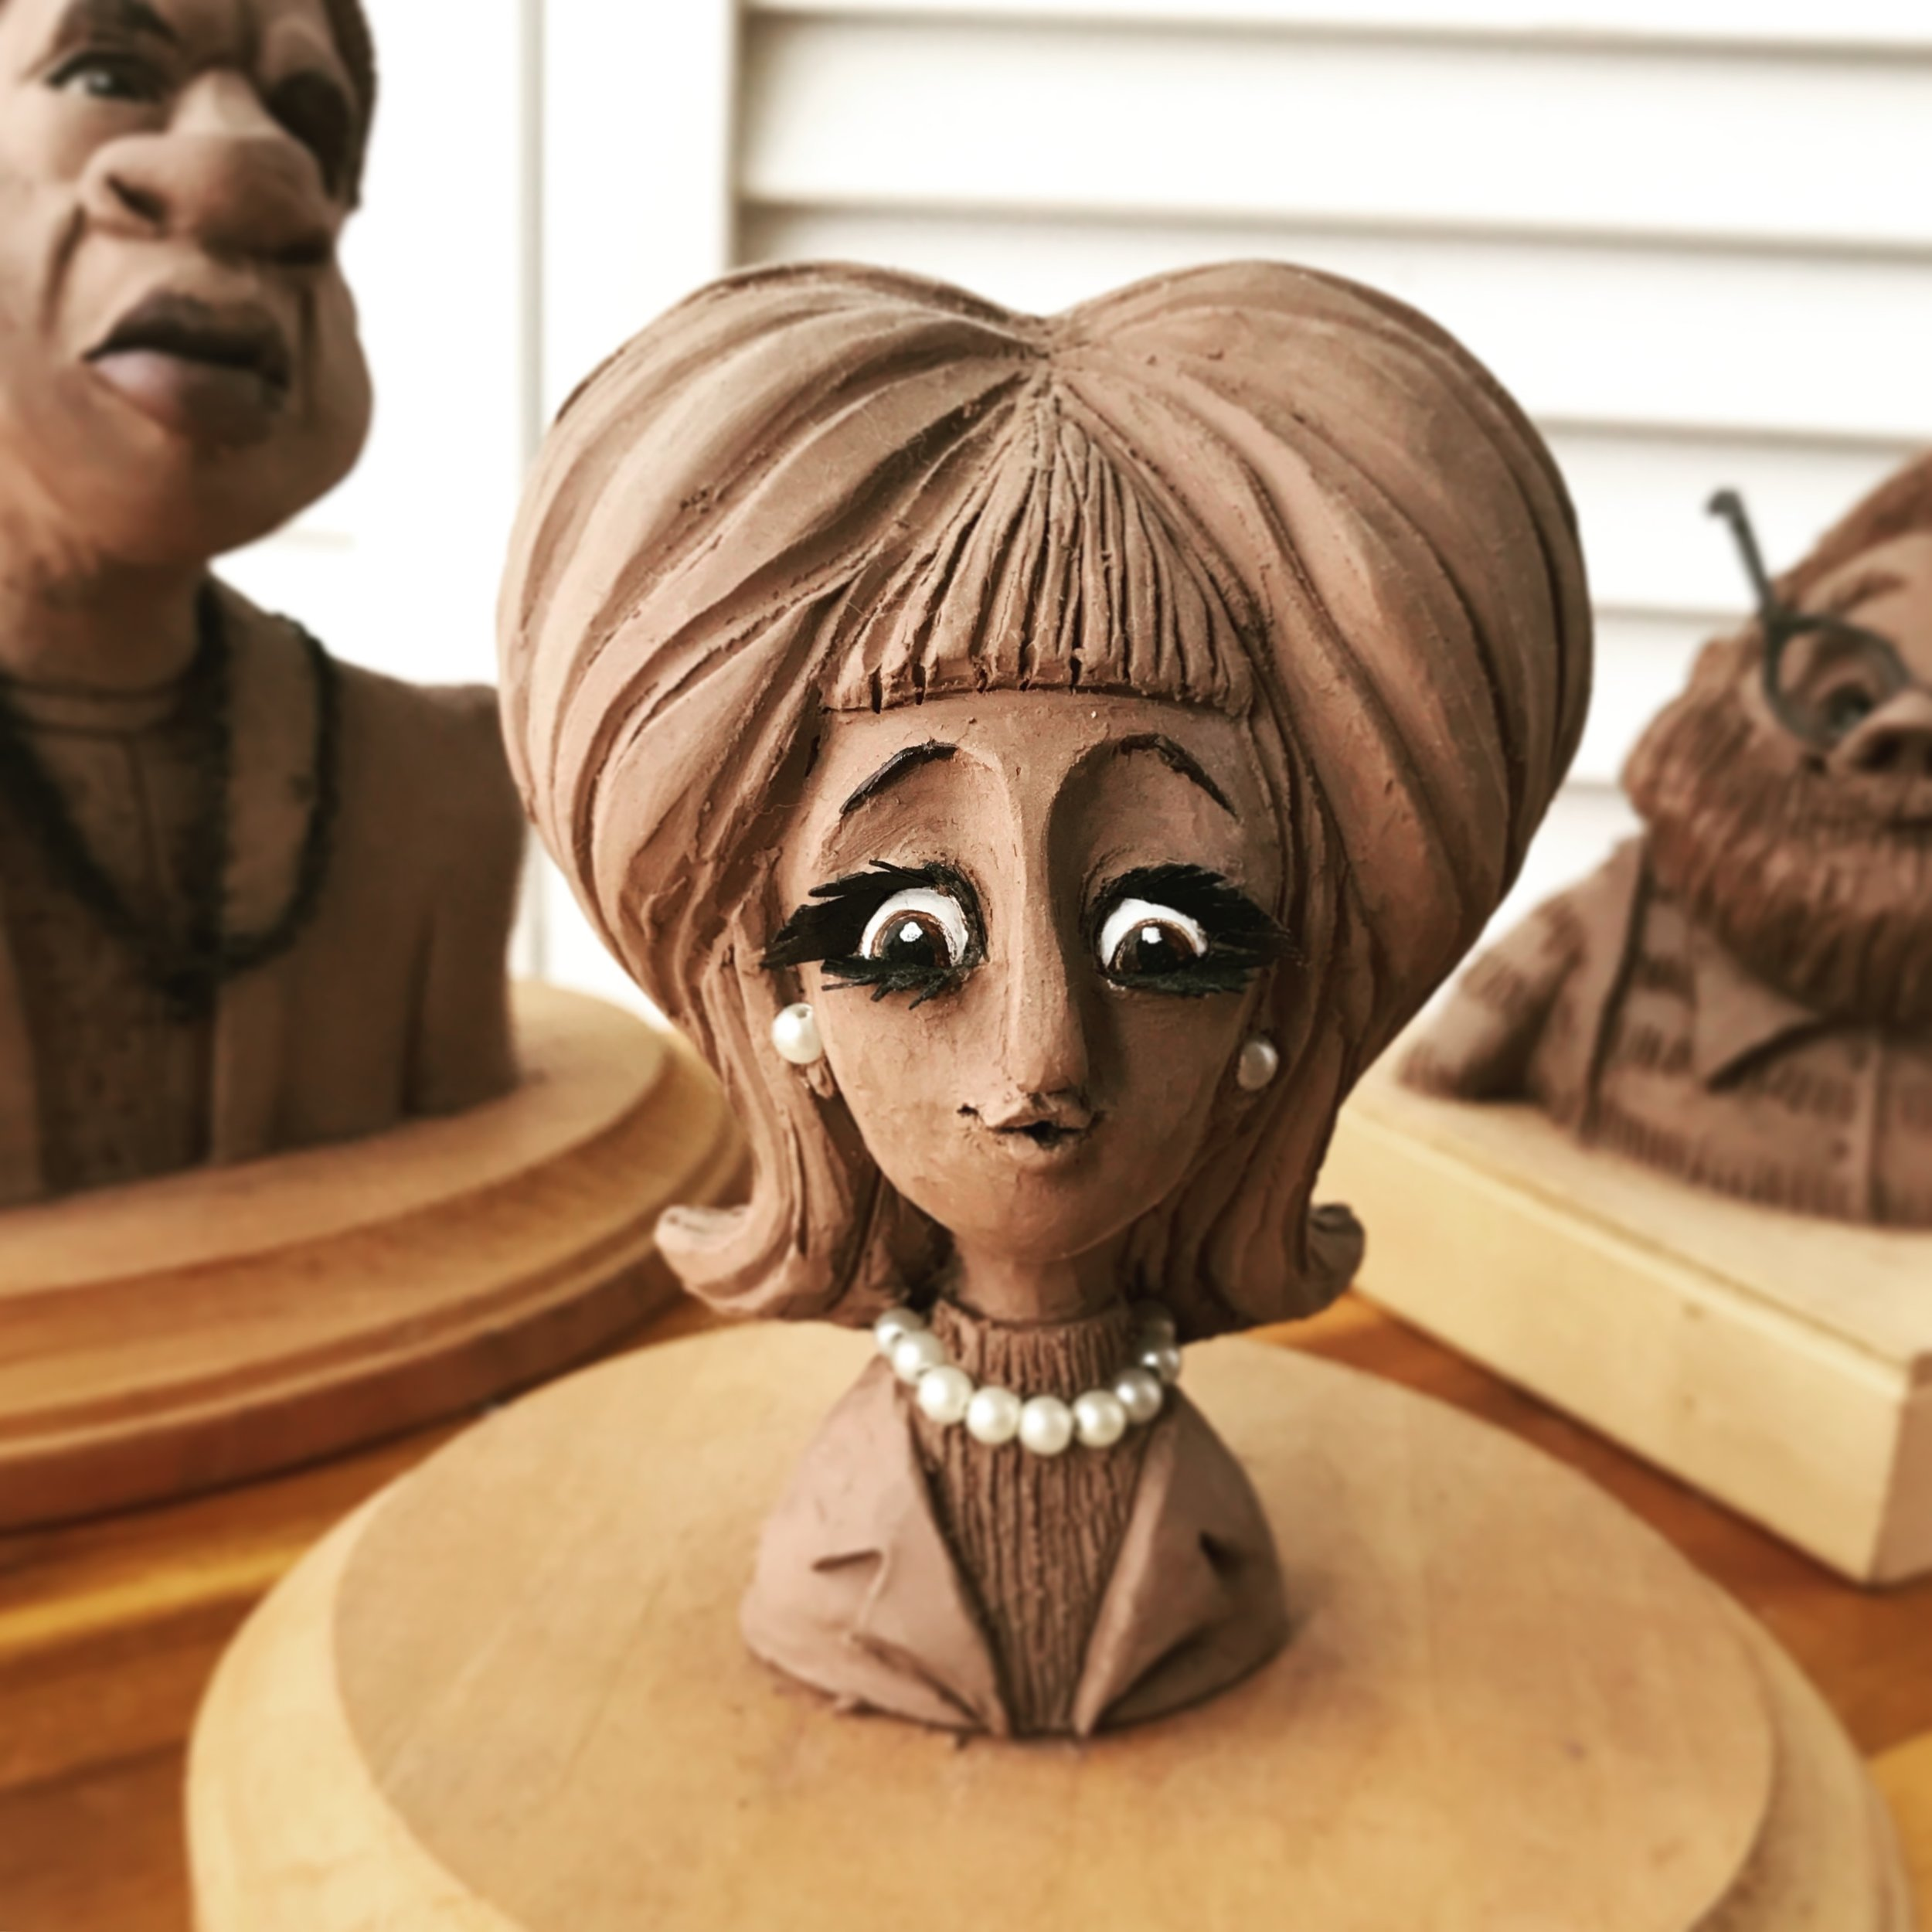 CHARACTER SCULPTURE - In this class, you'll learn traditional sculpting techniques to make a playful, kooky clay character.